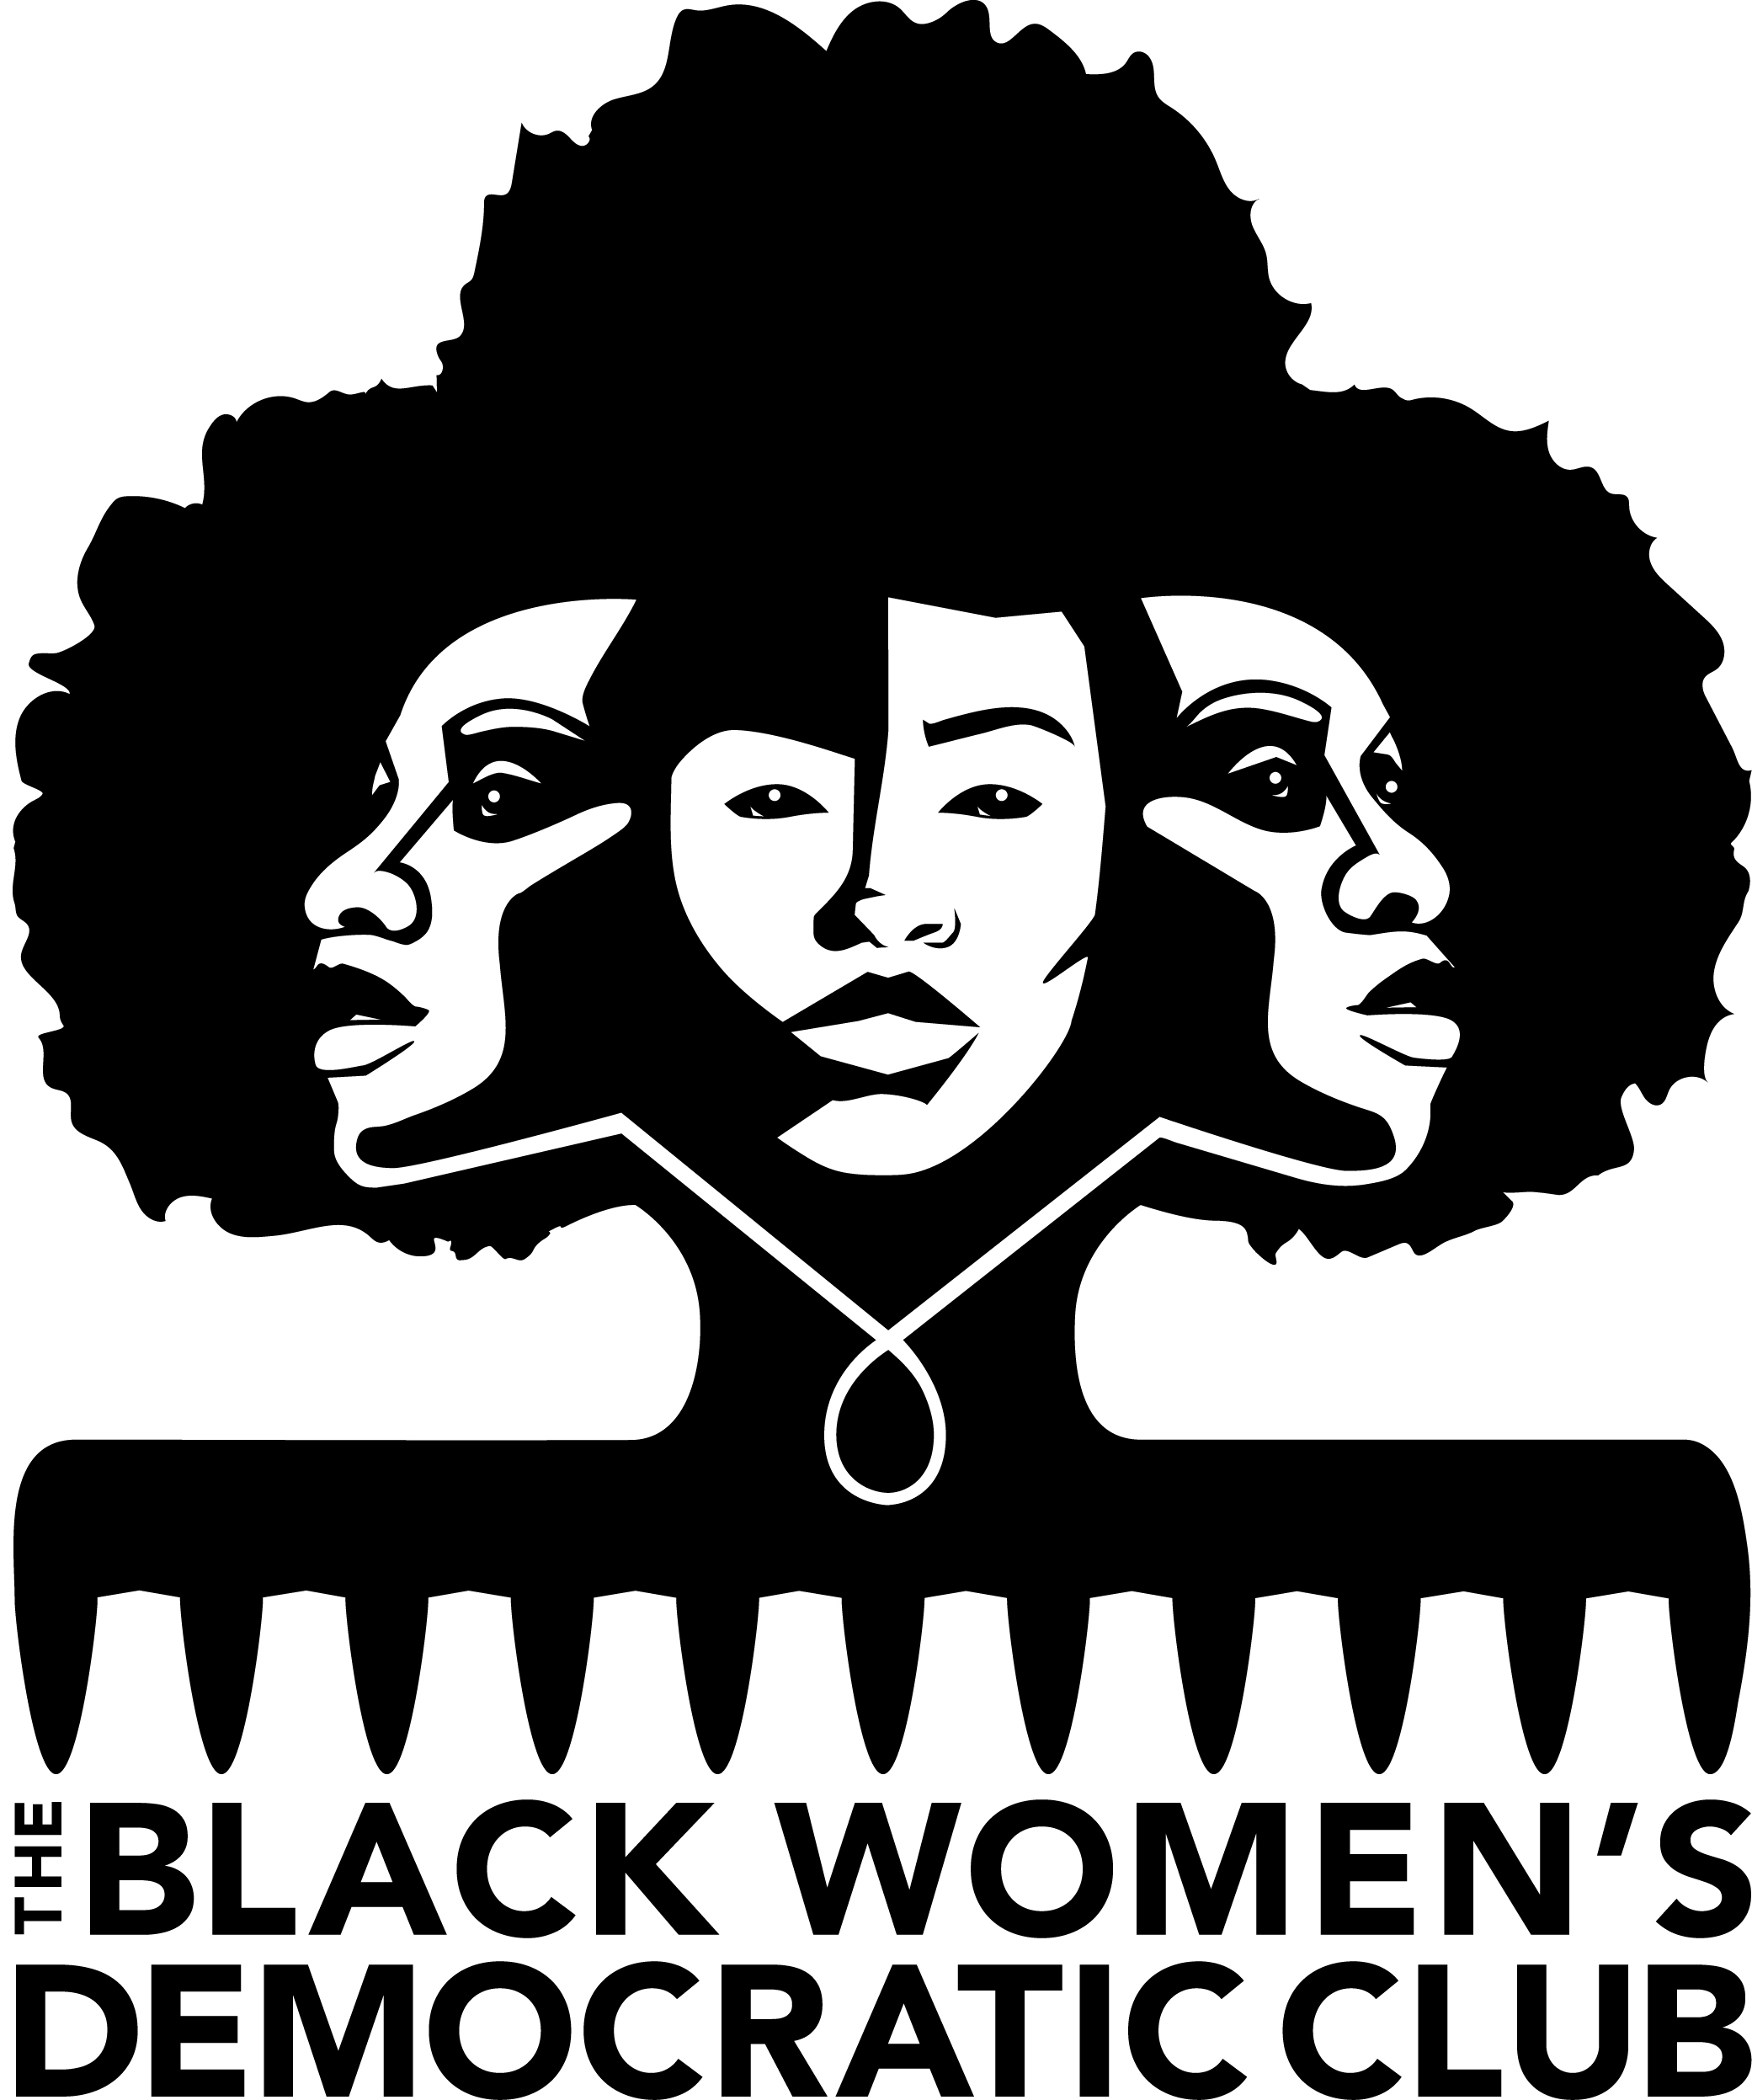 Black Women's Democratic Club (CA)